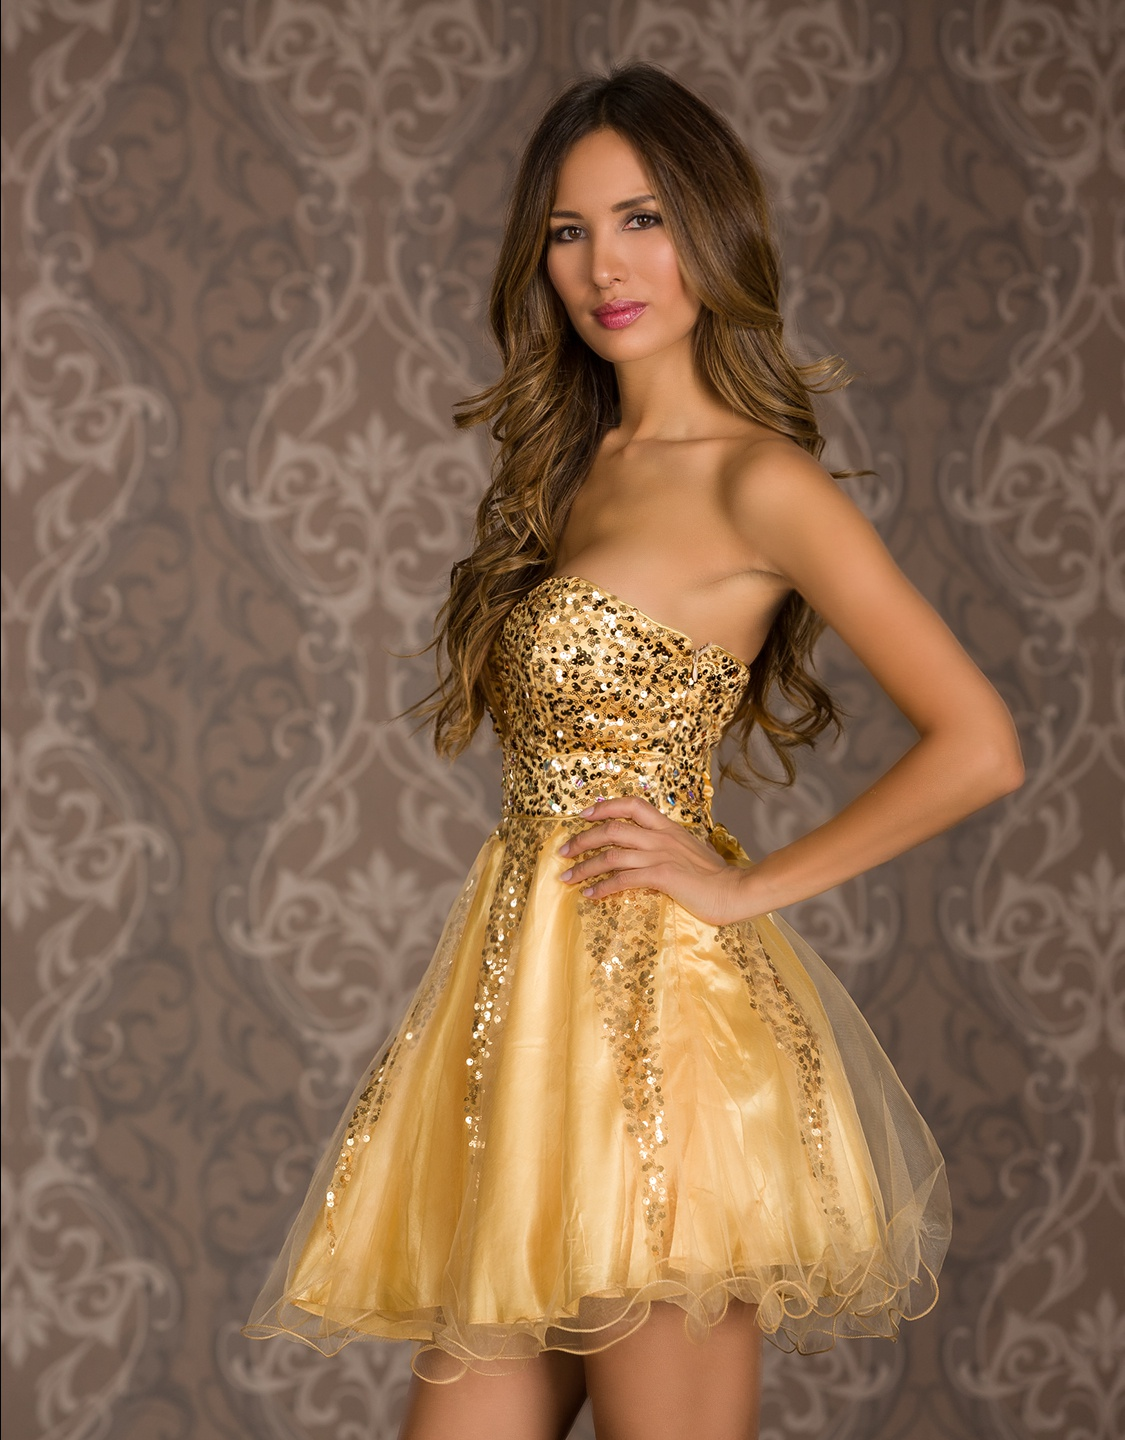 Gold Sequined Lace-Up Strapless Prom Dress With Puffy Skirt